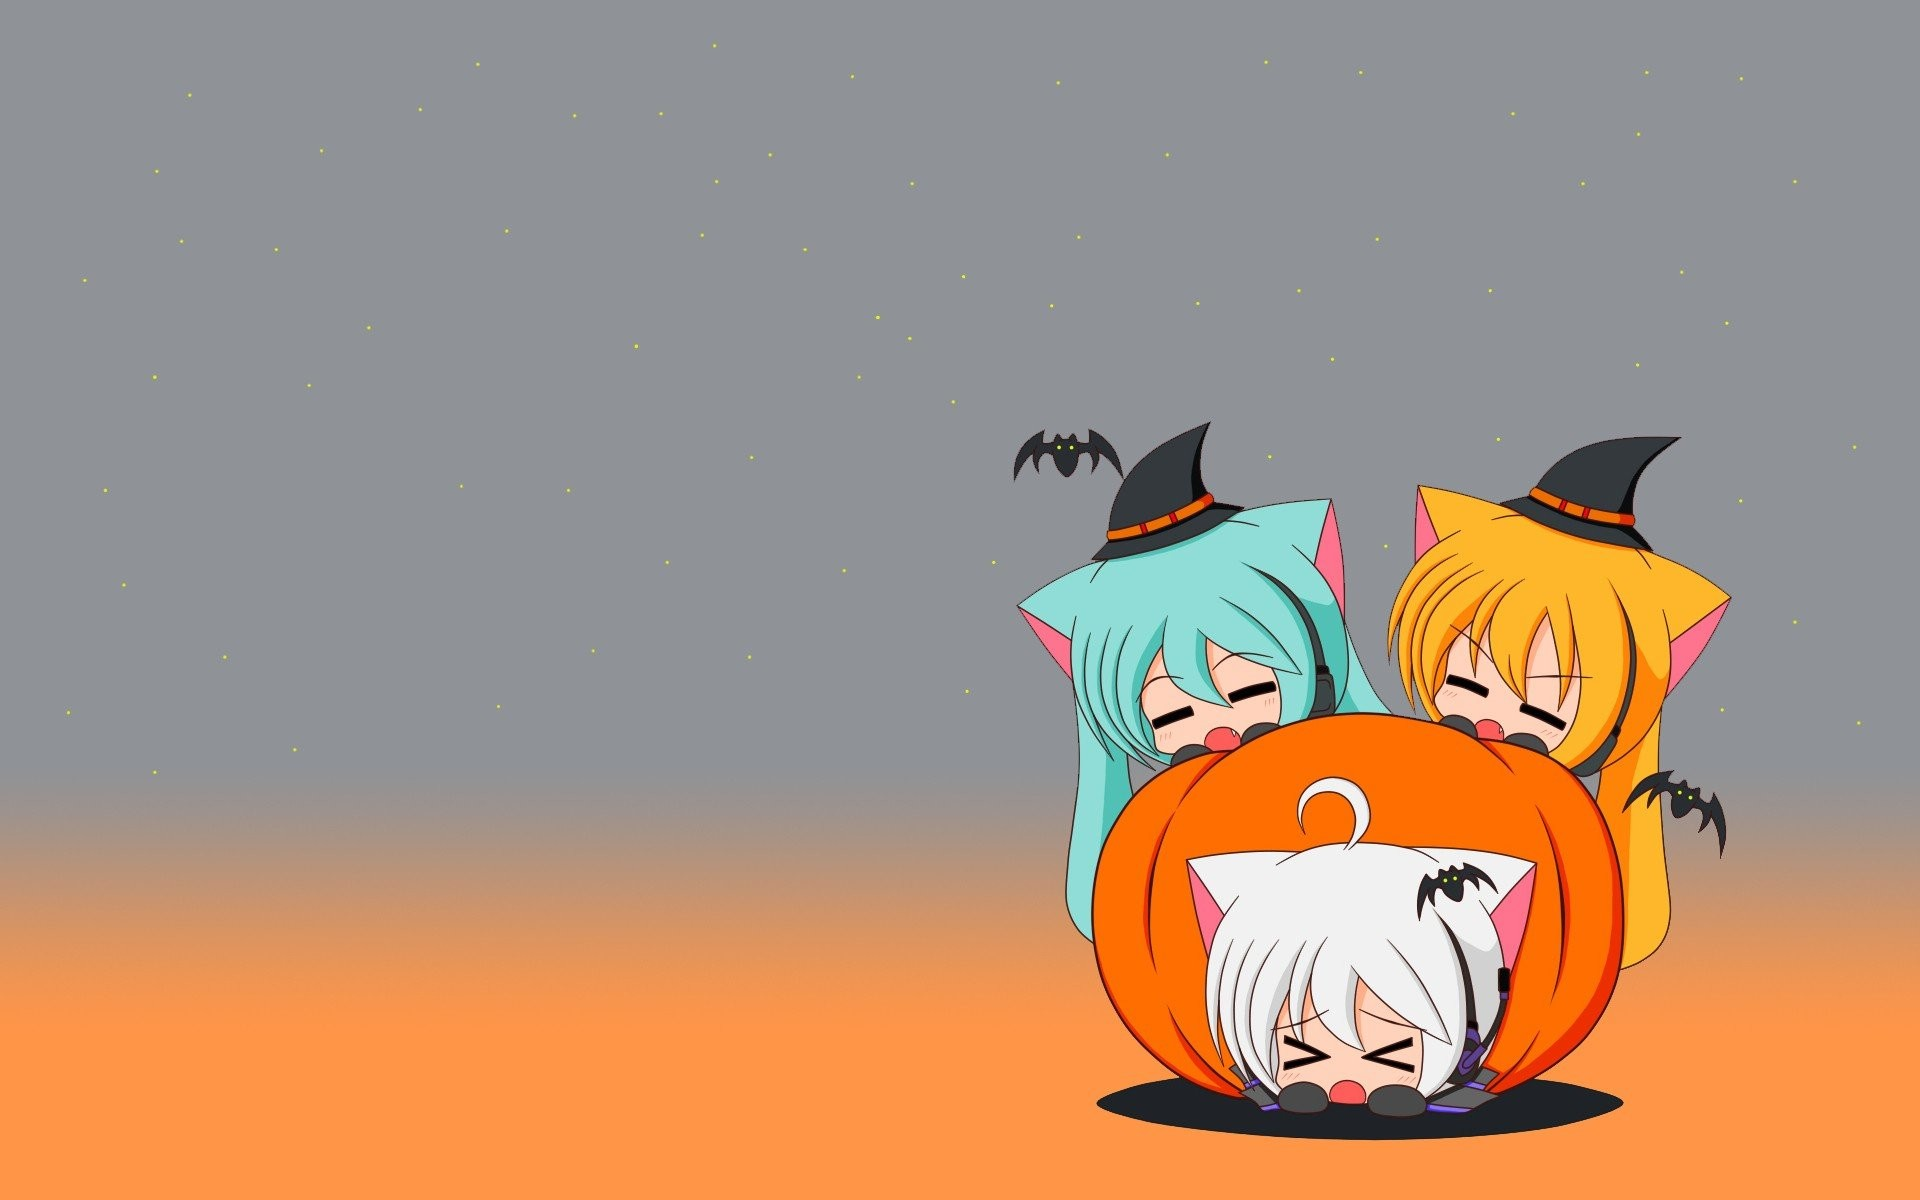 Awesome Iphone Wallpaper Tumblr 335 Check More At Http Halloween Anime Wallpaper Hd Chibi 1957712 Hd Wallpaper Backgrounds Download